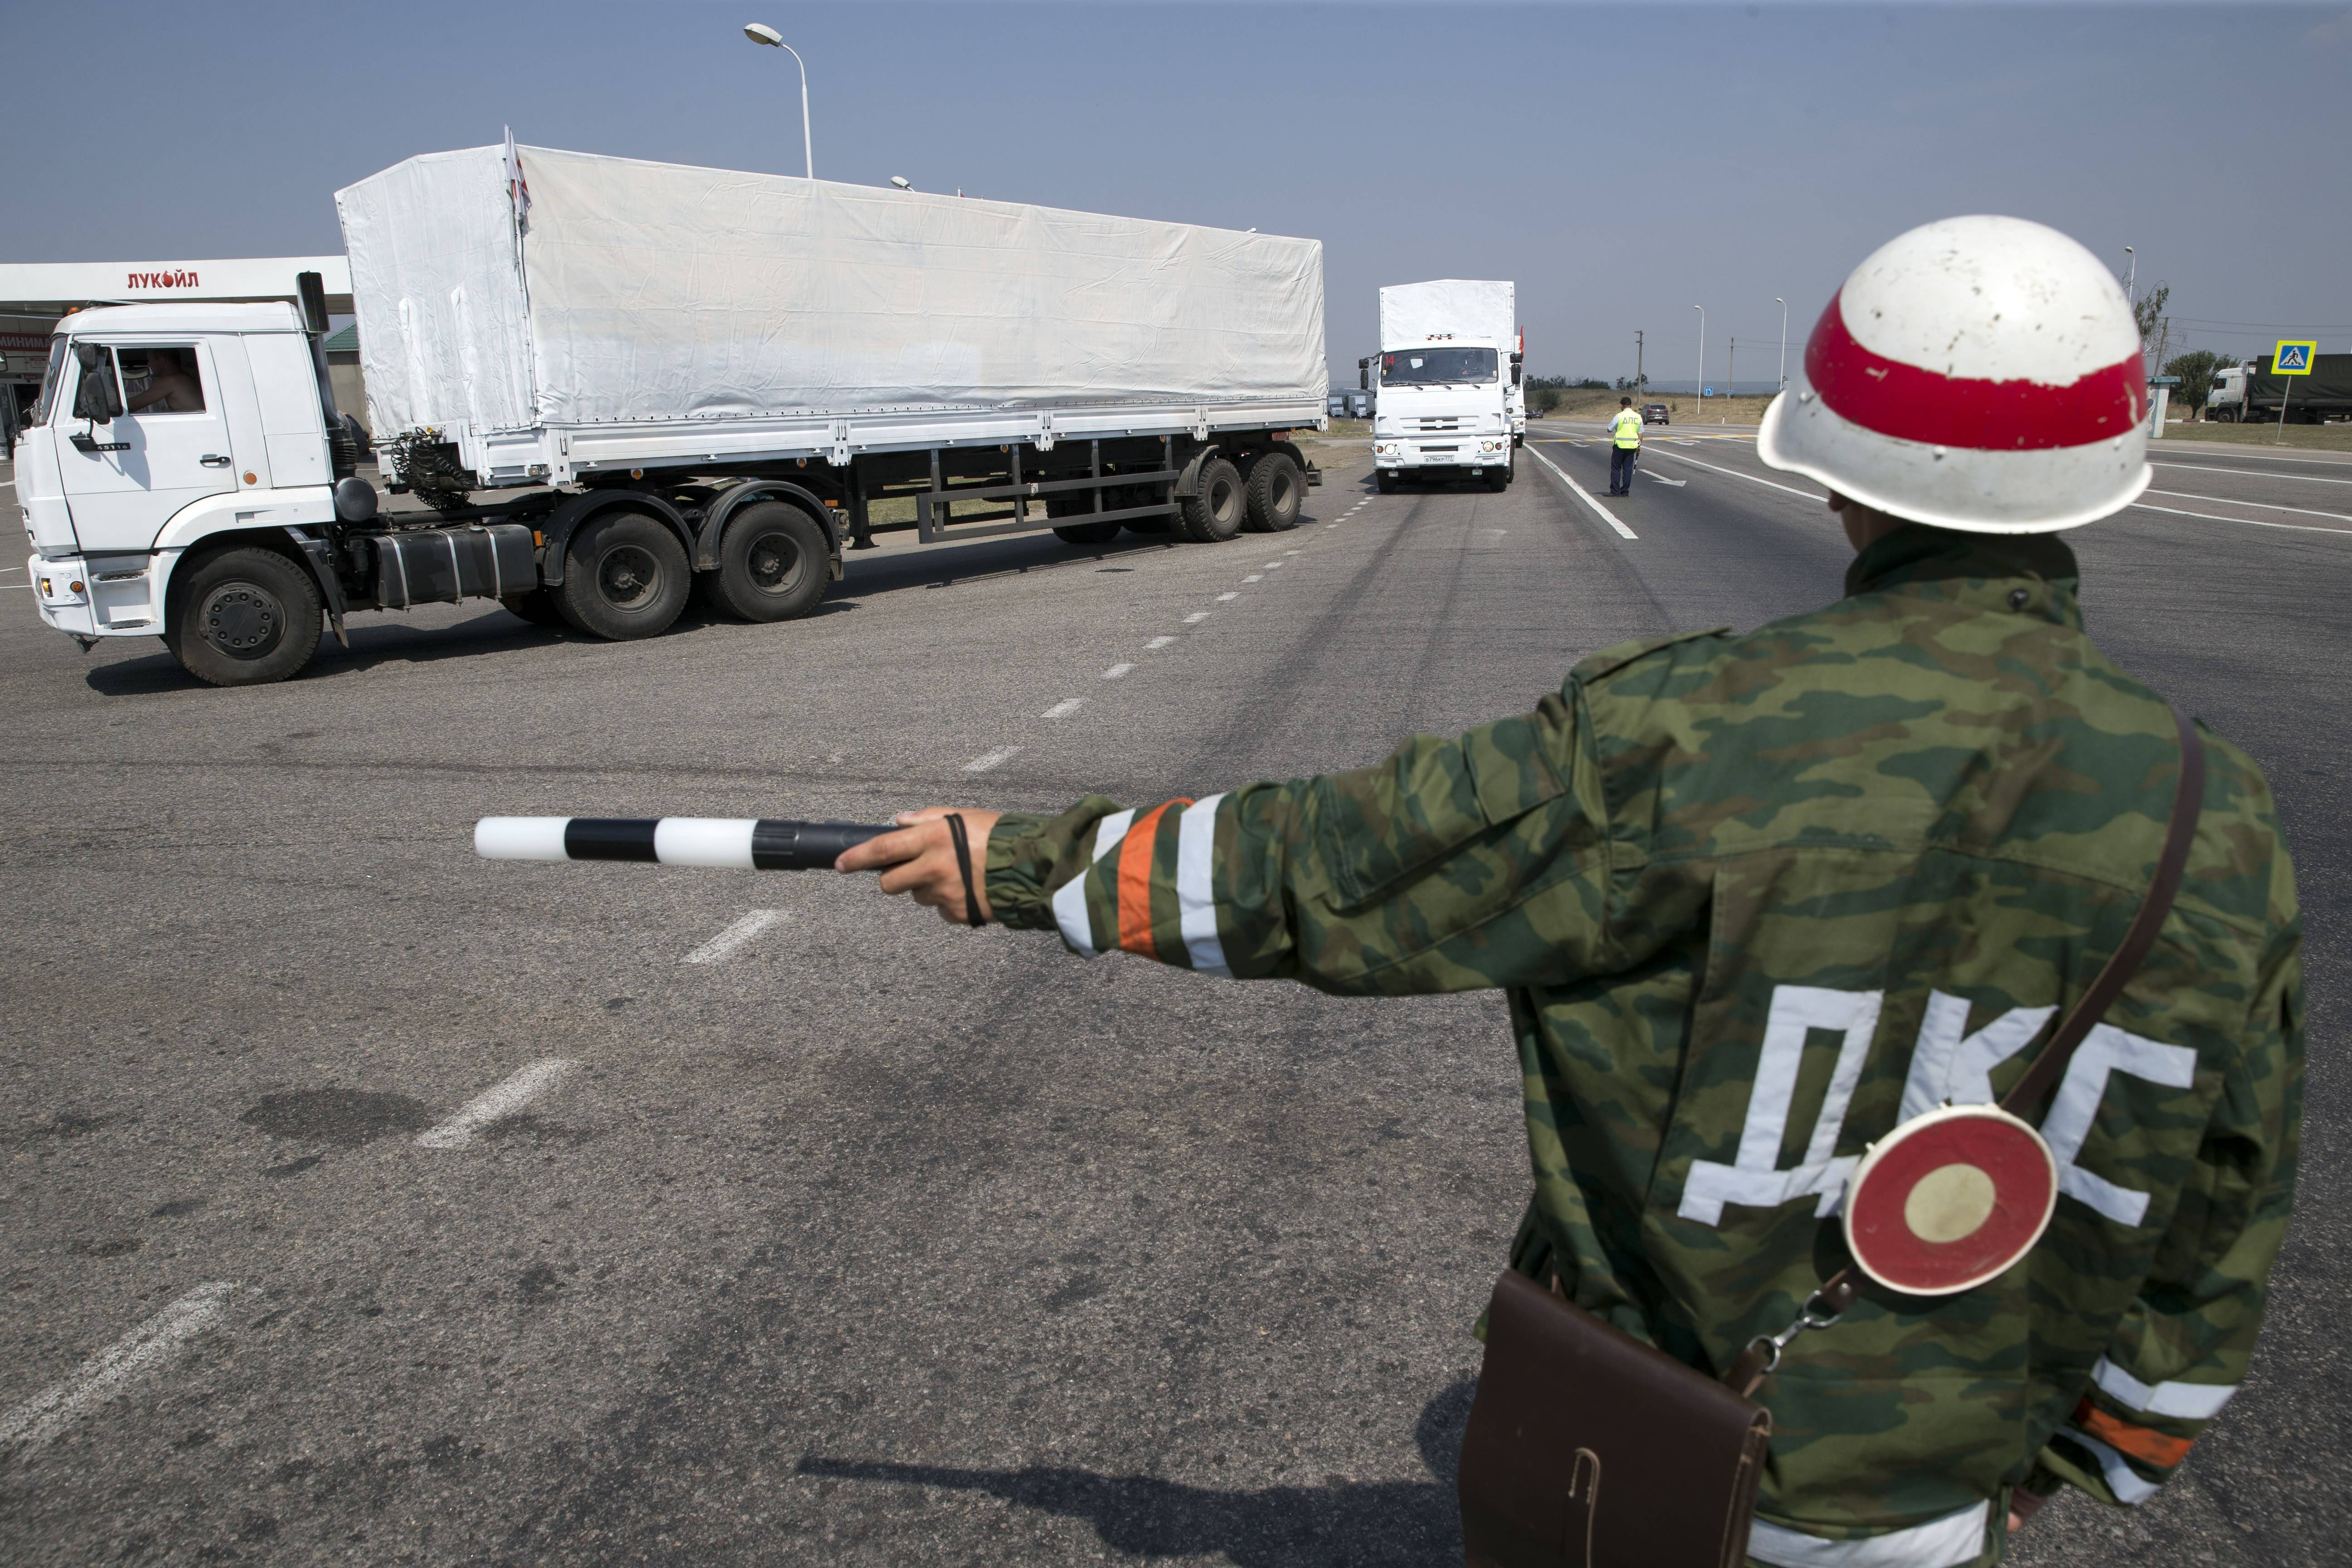 A convoy of white trucks with humanitarian aid is seen at the Ukrainian border in Rostov-on-Don region, Russia, Thursday, Aug. 14, 2014.